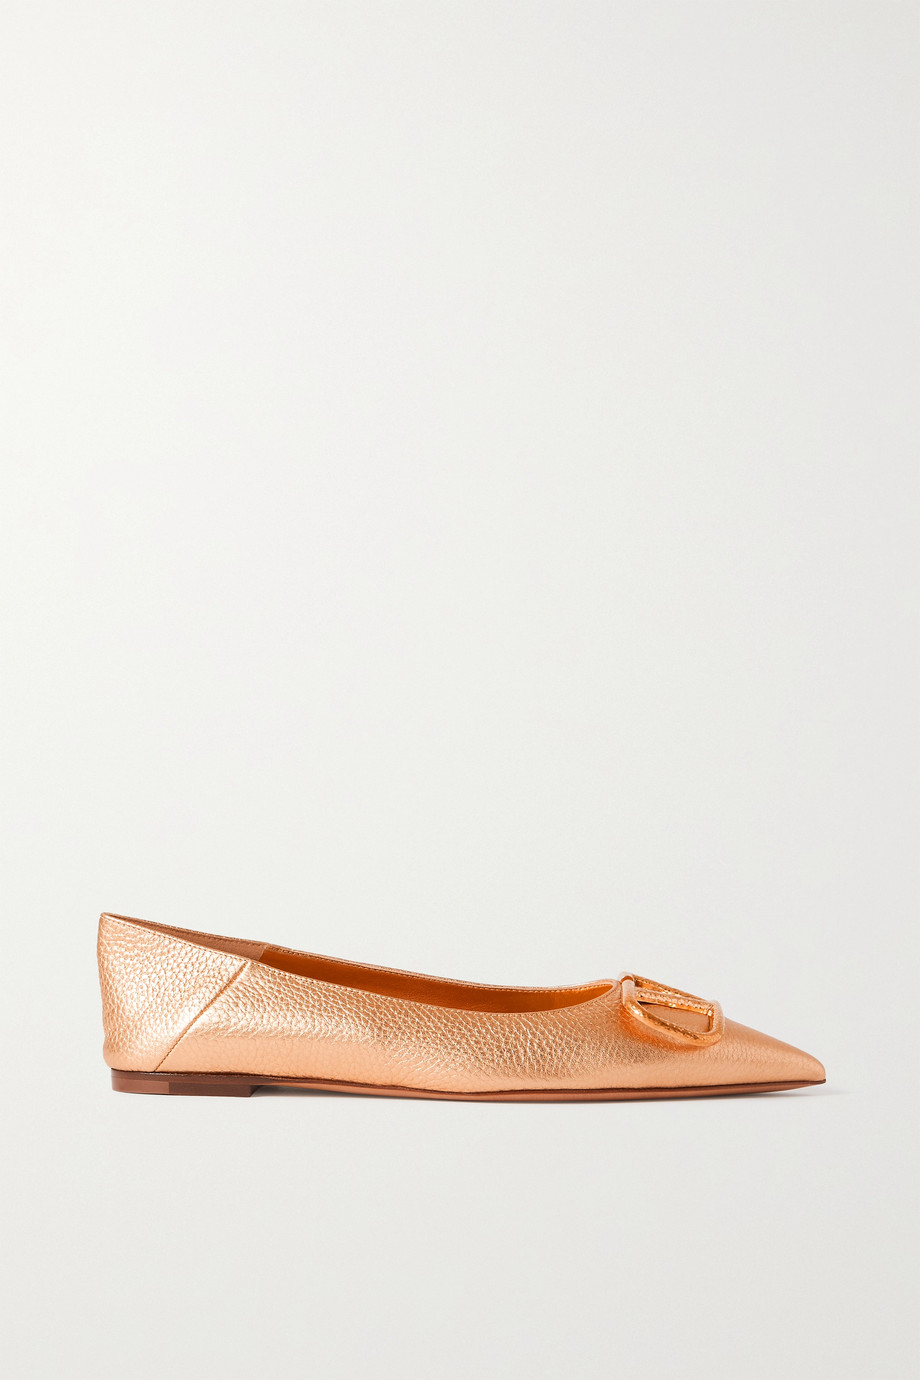 VALENTINO Go Logo metallic textured-leather collapsible-heel point-toe flats